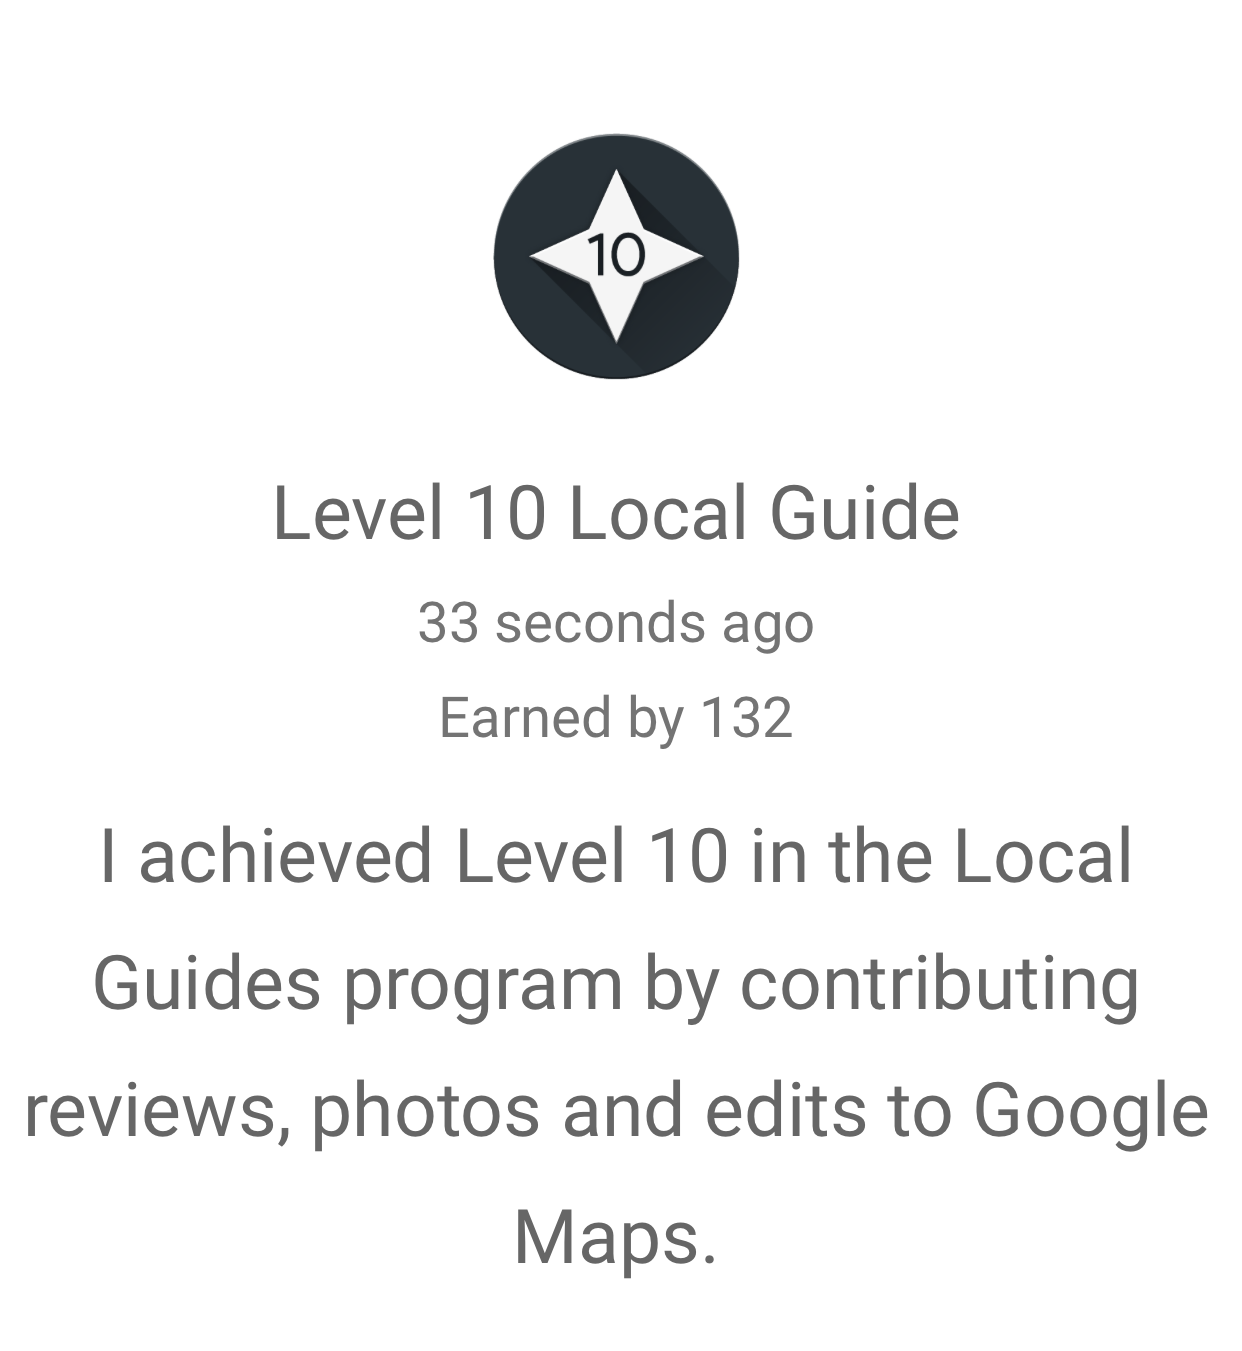 Local Guide Level 10